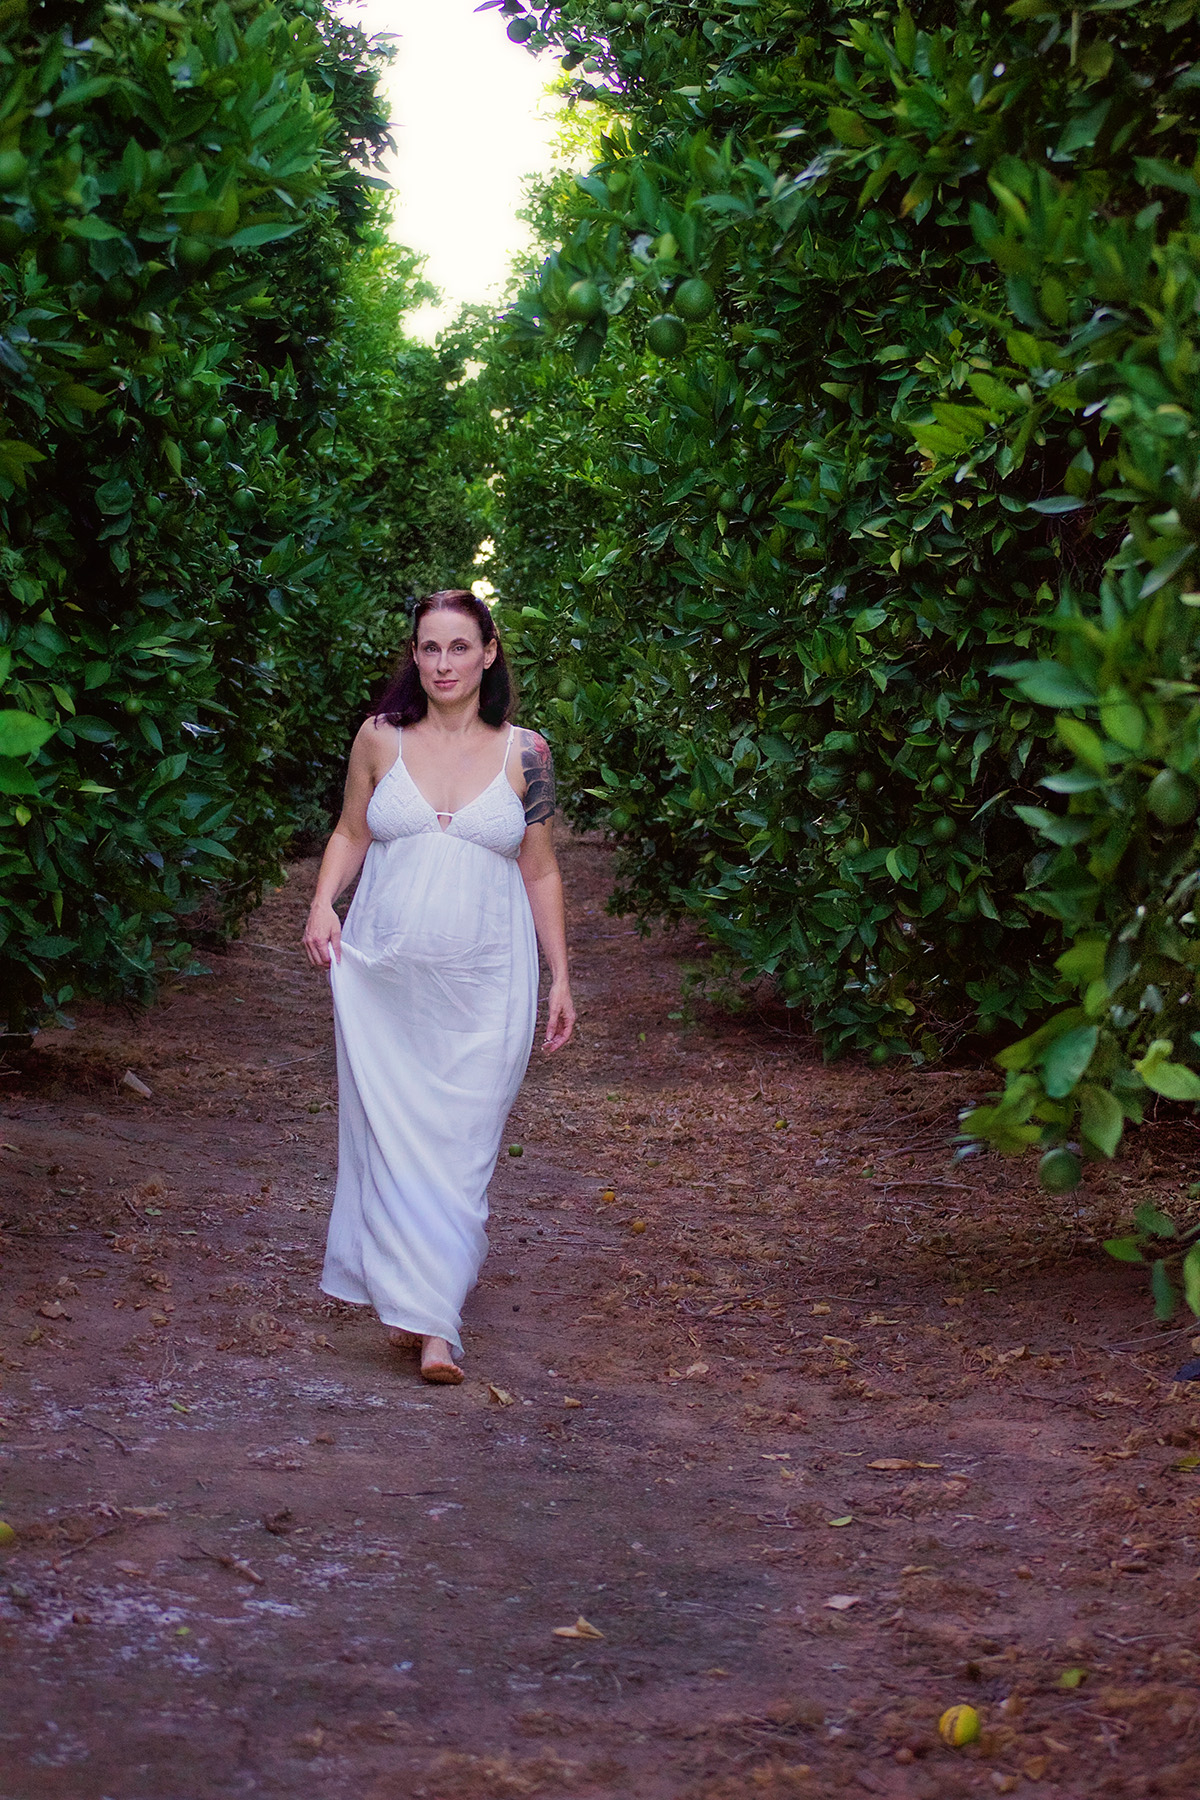 White Dress Greenery Mother | Lifestyle Portrait Photography | Lacey O